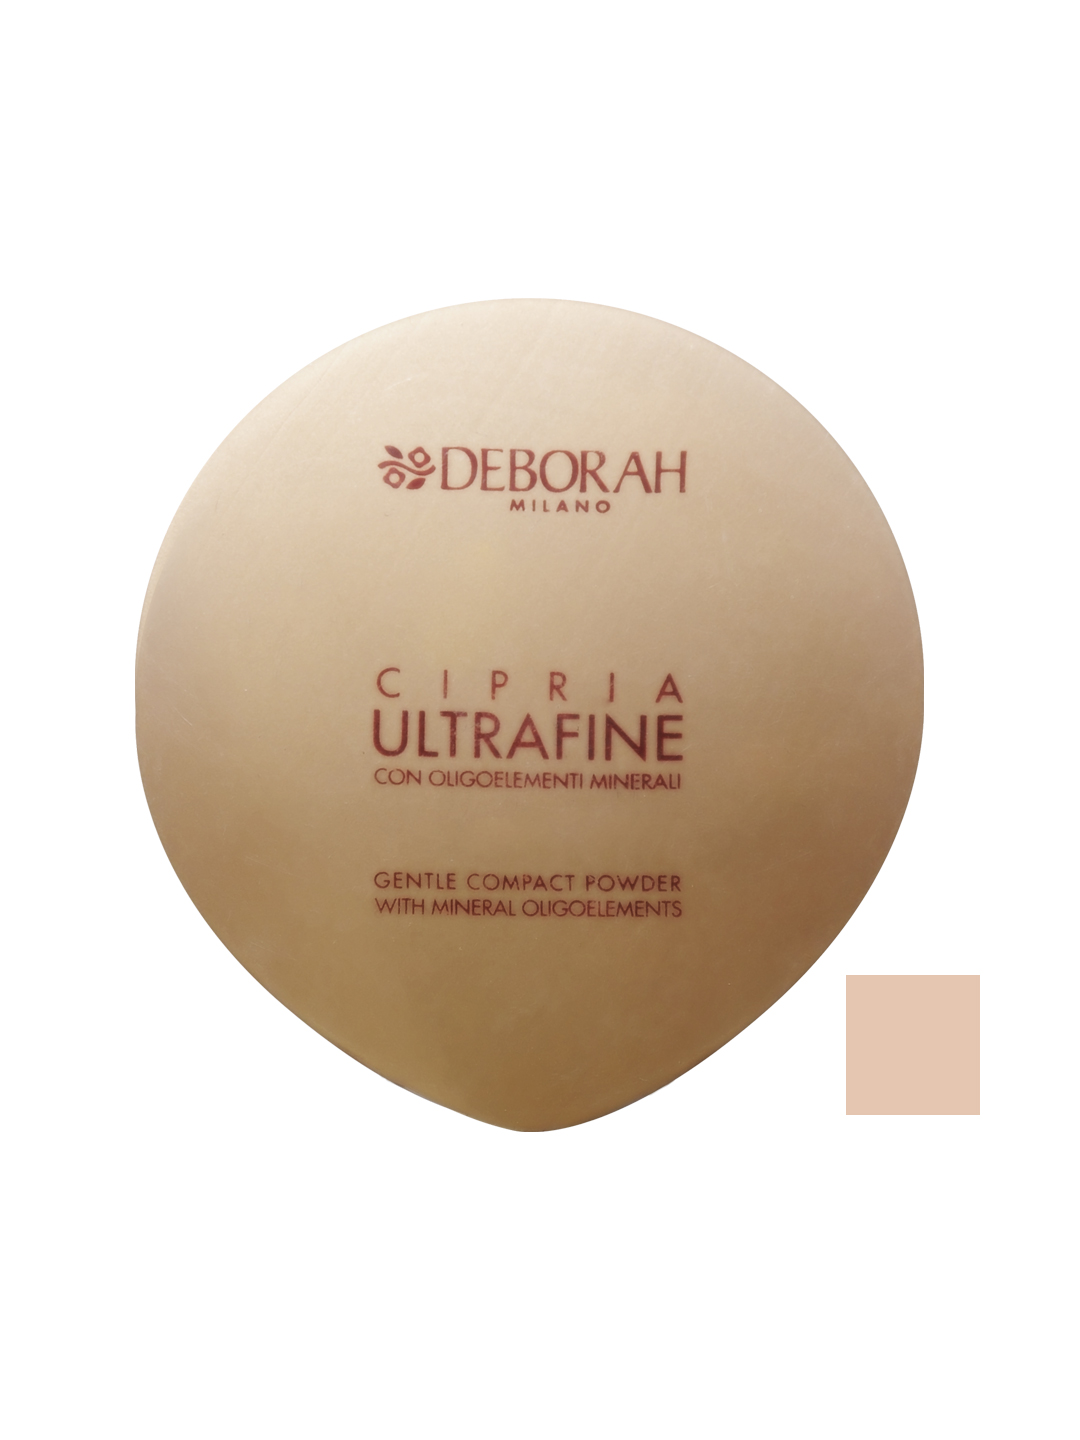 Deborah Ultra Fine Compact Powder 02